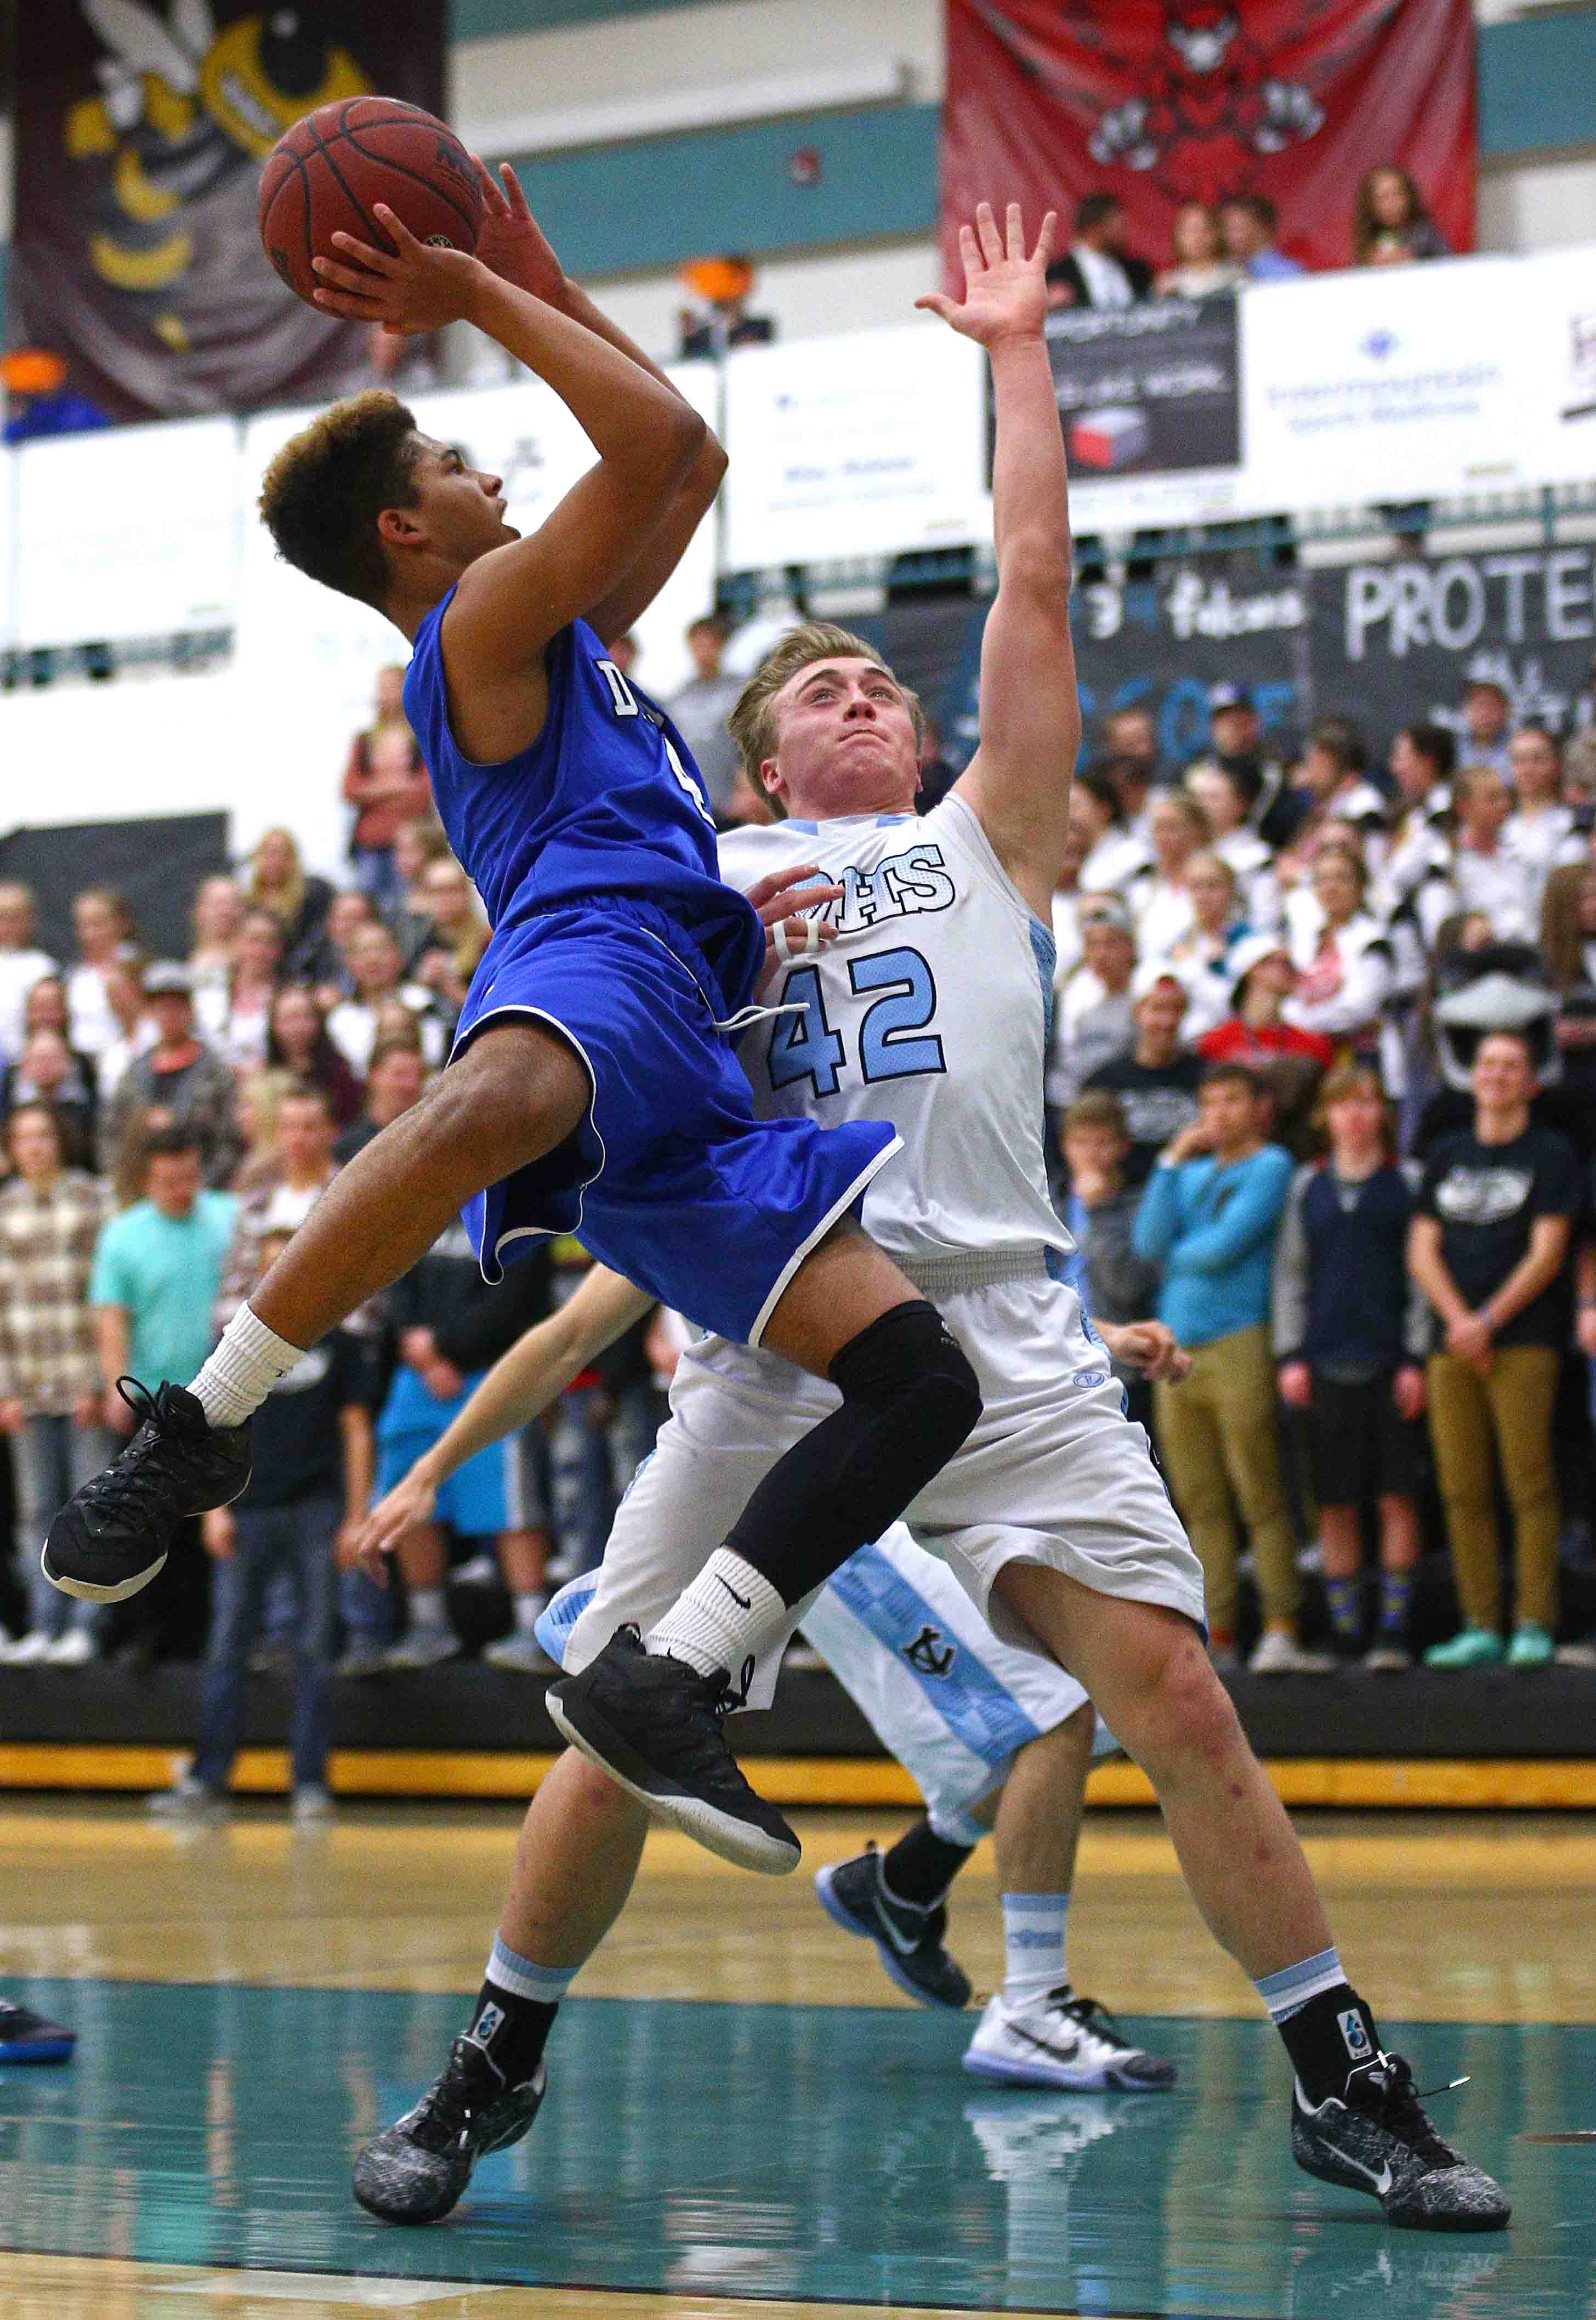 Dixie's Kaden Elzy (4), Canyon View vs. Dixie, Boys Basketball, Cedar City, Utah, Dec. 6, 2016, | Photo by Robert Hoppie, ASPpix.com, St. George News